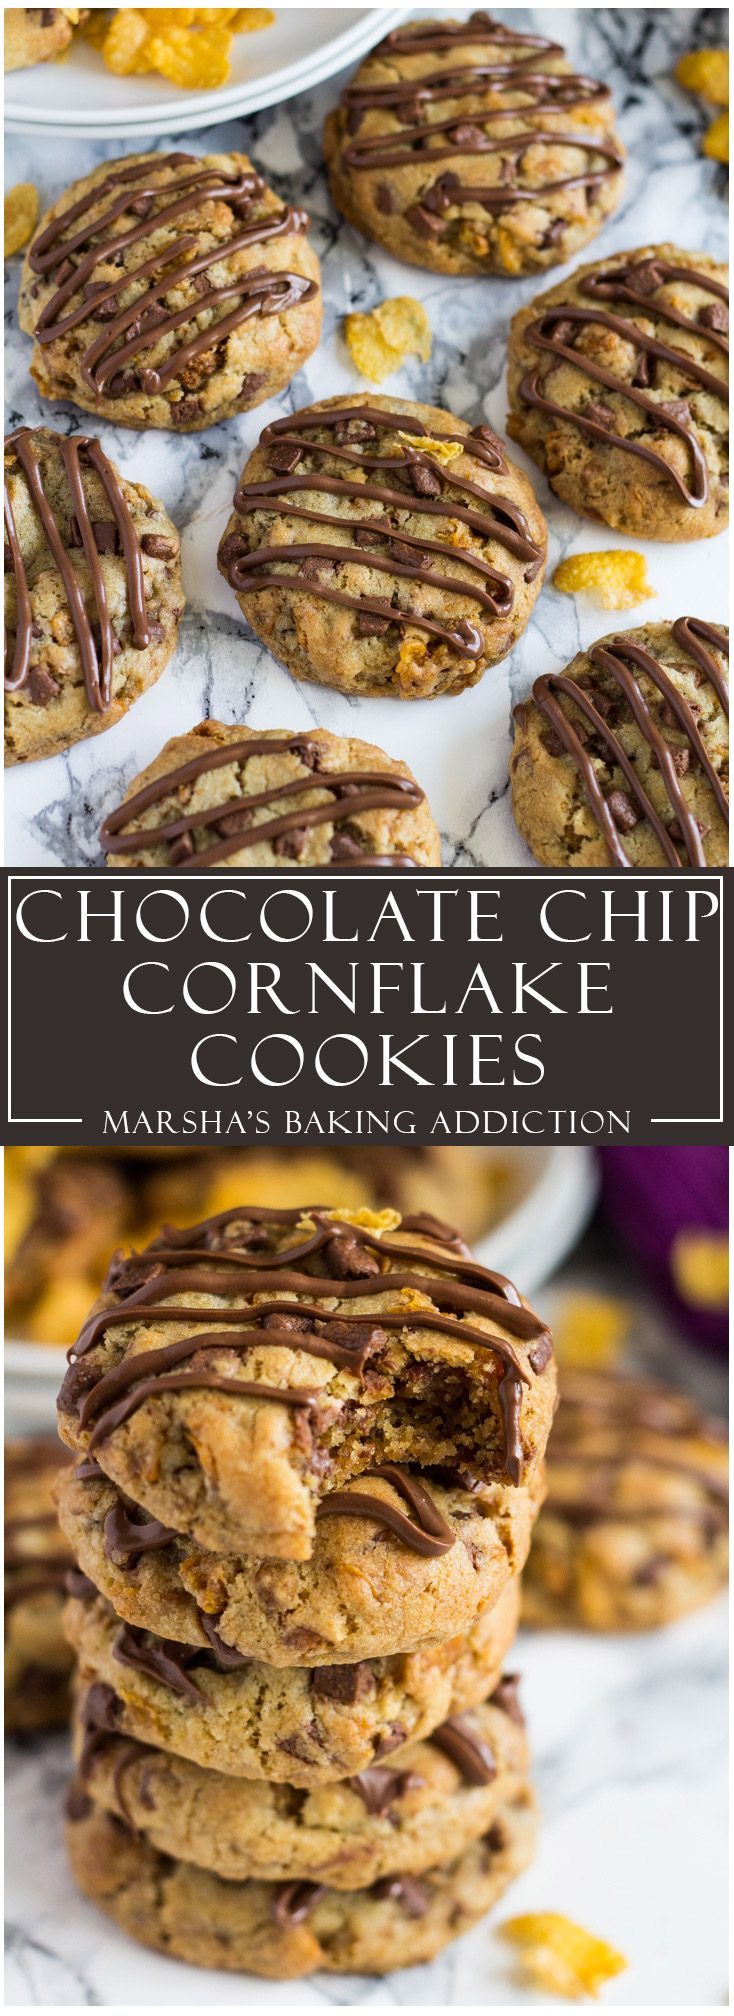 Chocolate Chip Cornflake Cookies | marshasbakingaddi... @Marsha's Baking Addiction